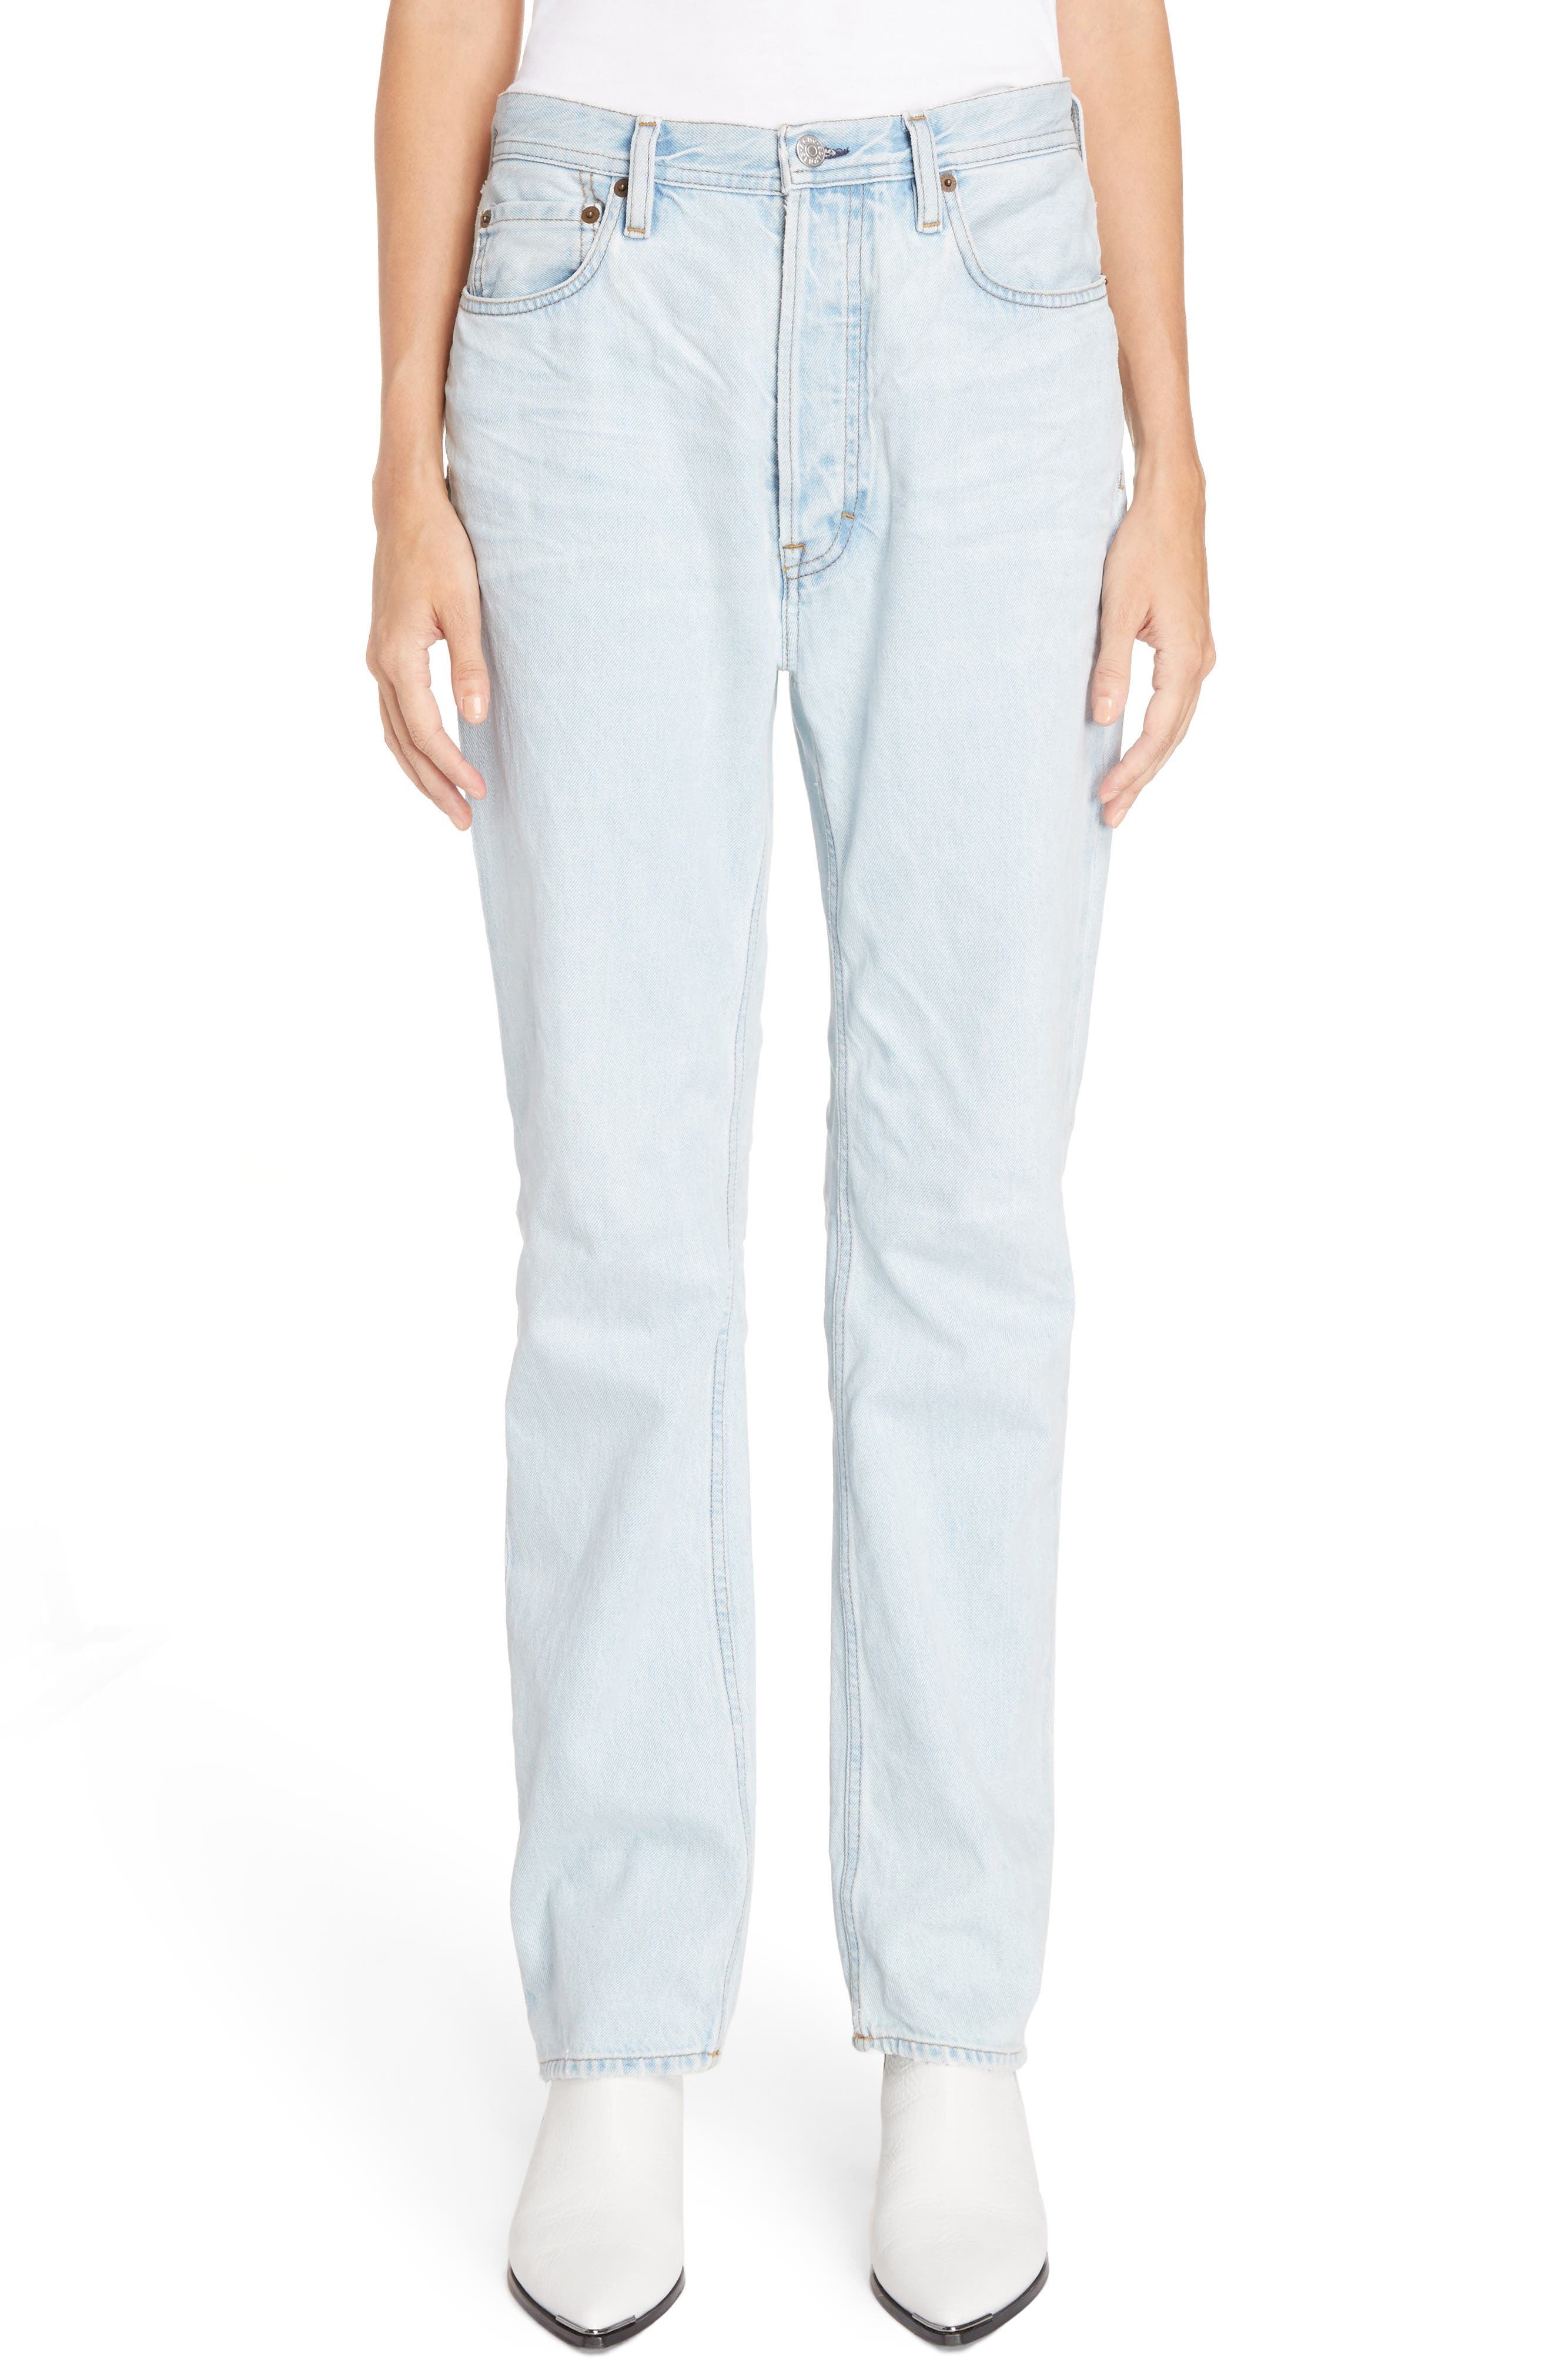 Log Relaxed Leg Jeans,                             Main thumbnail 1, color,                             400